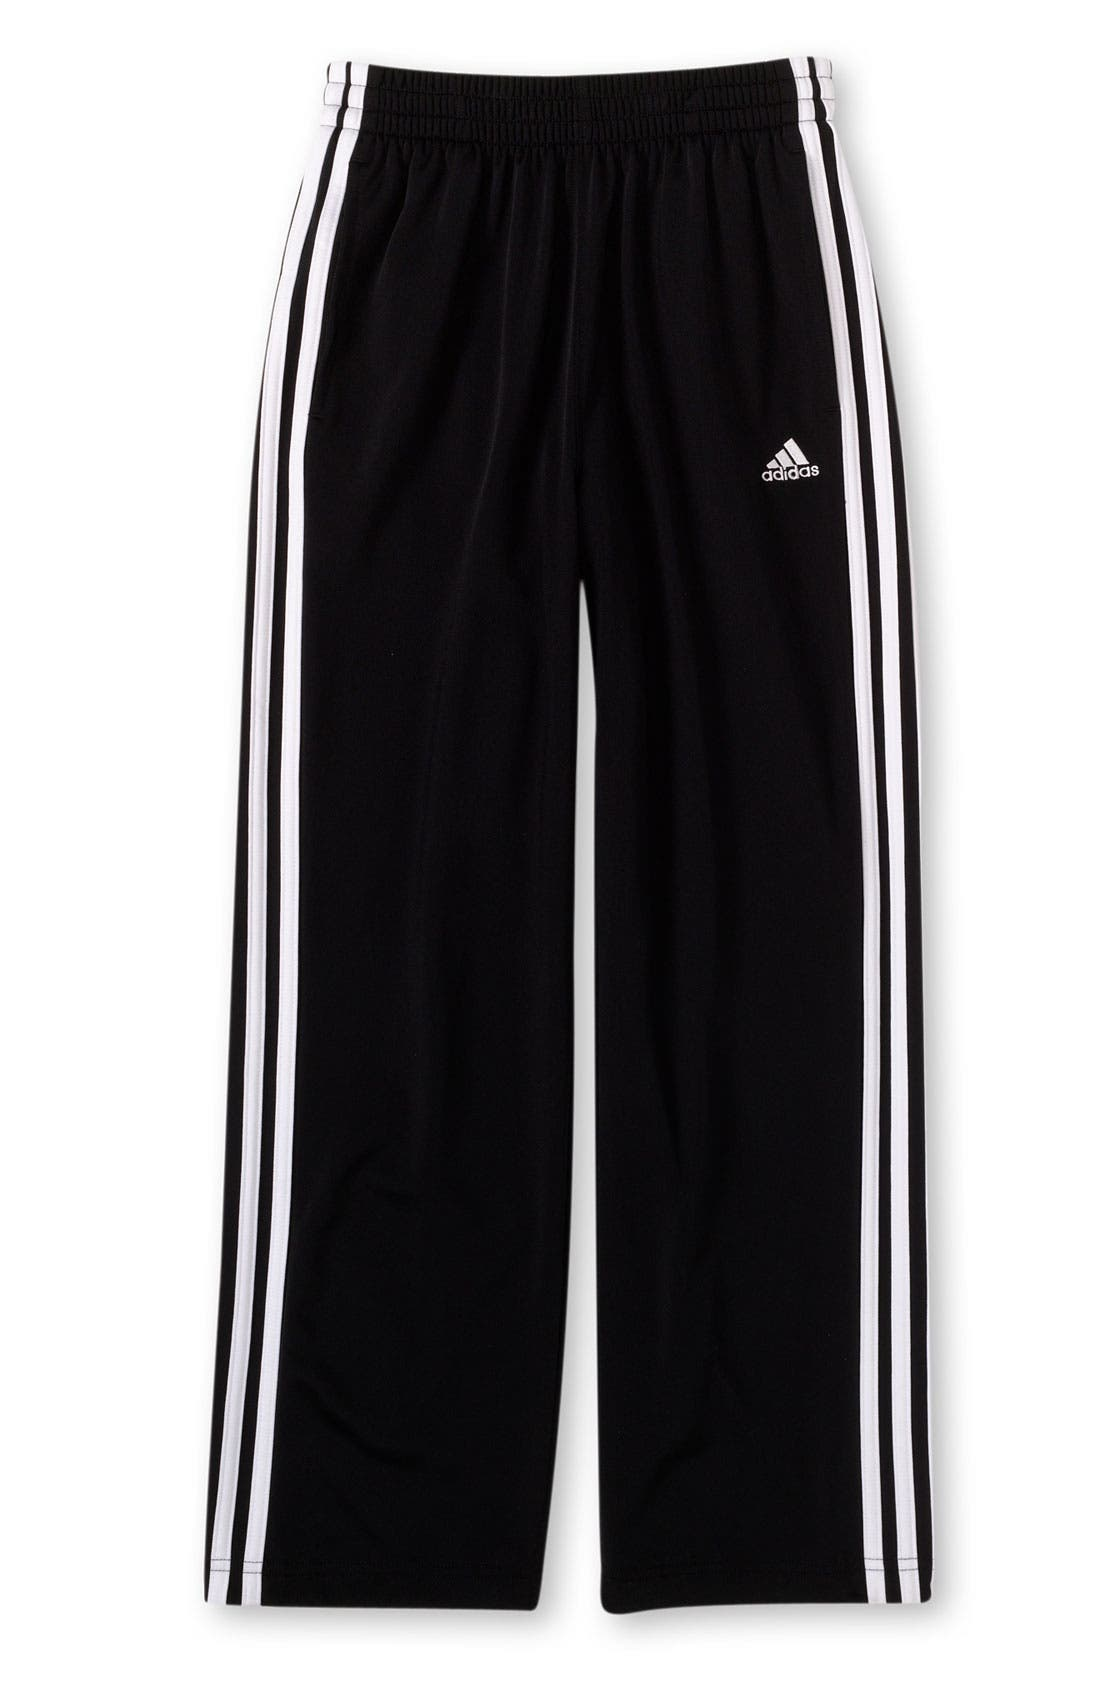 Main Image - adidas 3-Stripes Pants (Big Boys)